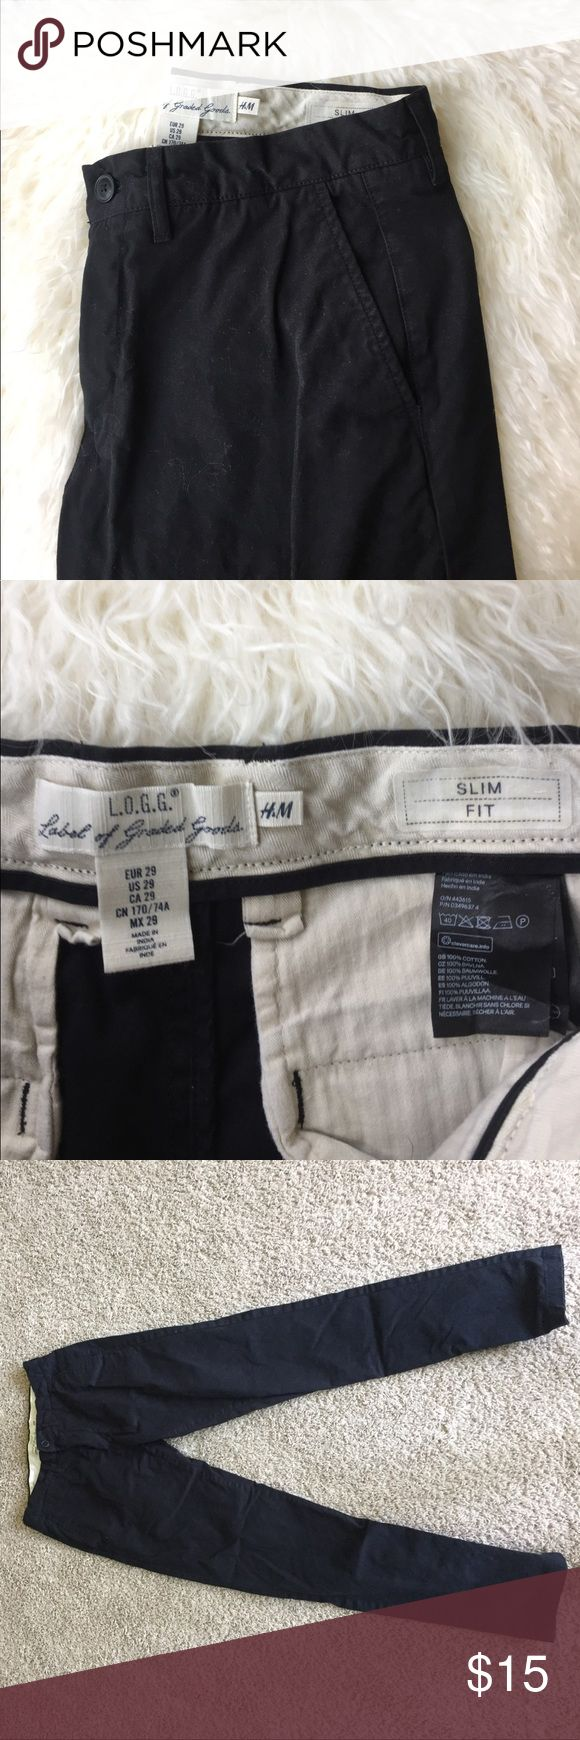 Men slim fit cargo pants Great condition H&M Pants Cargo